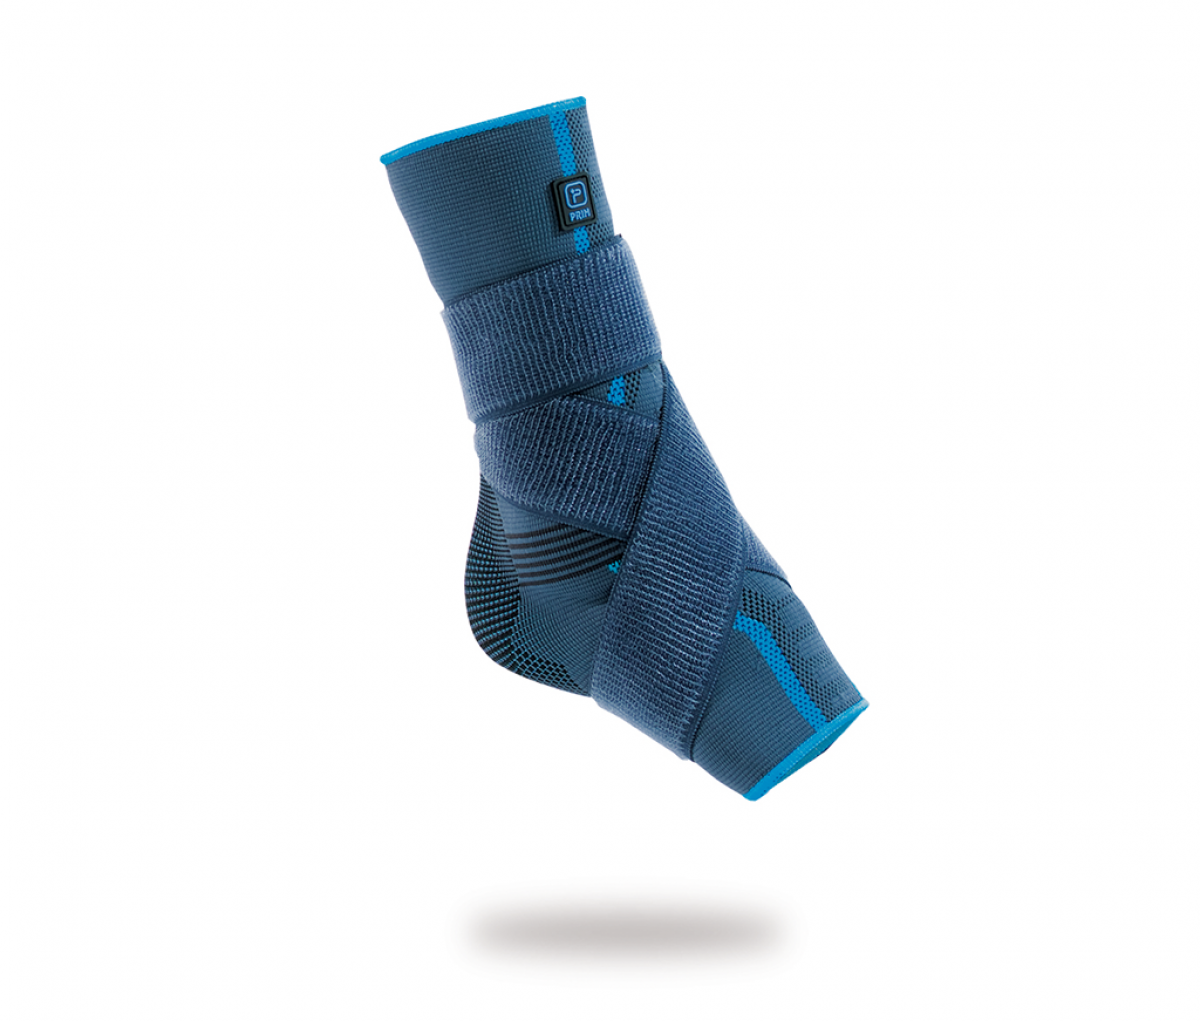 AQTIVO ANKLE BRACE WITH FIGURE OF 8 STRAP - L P706